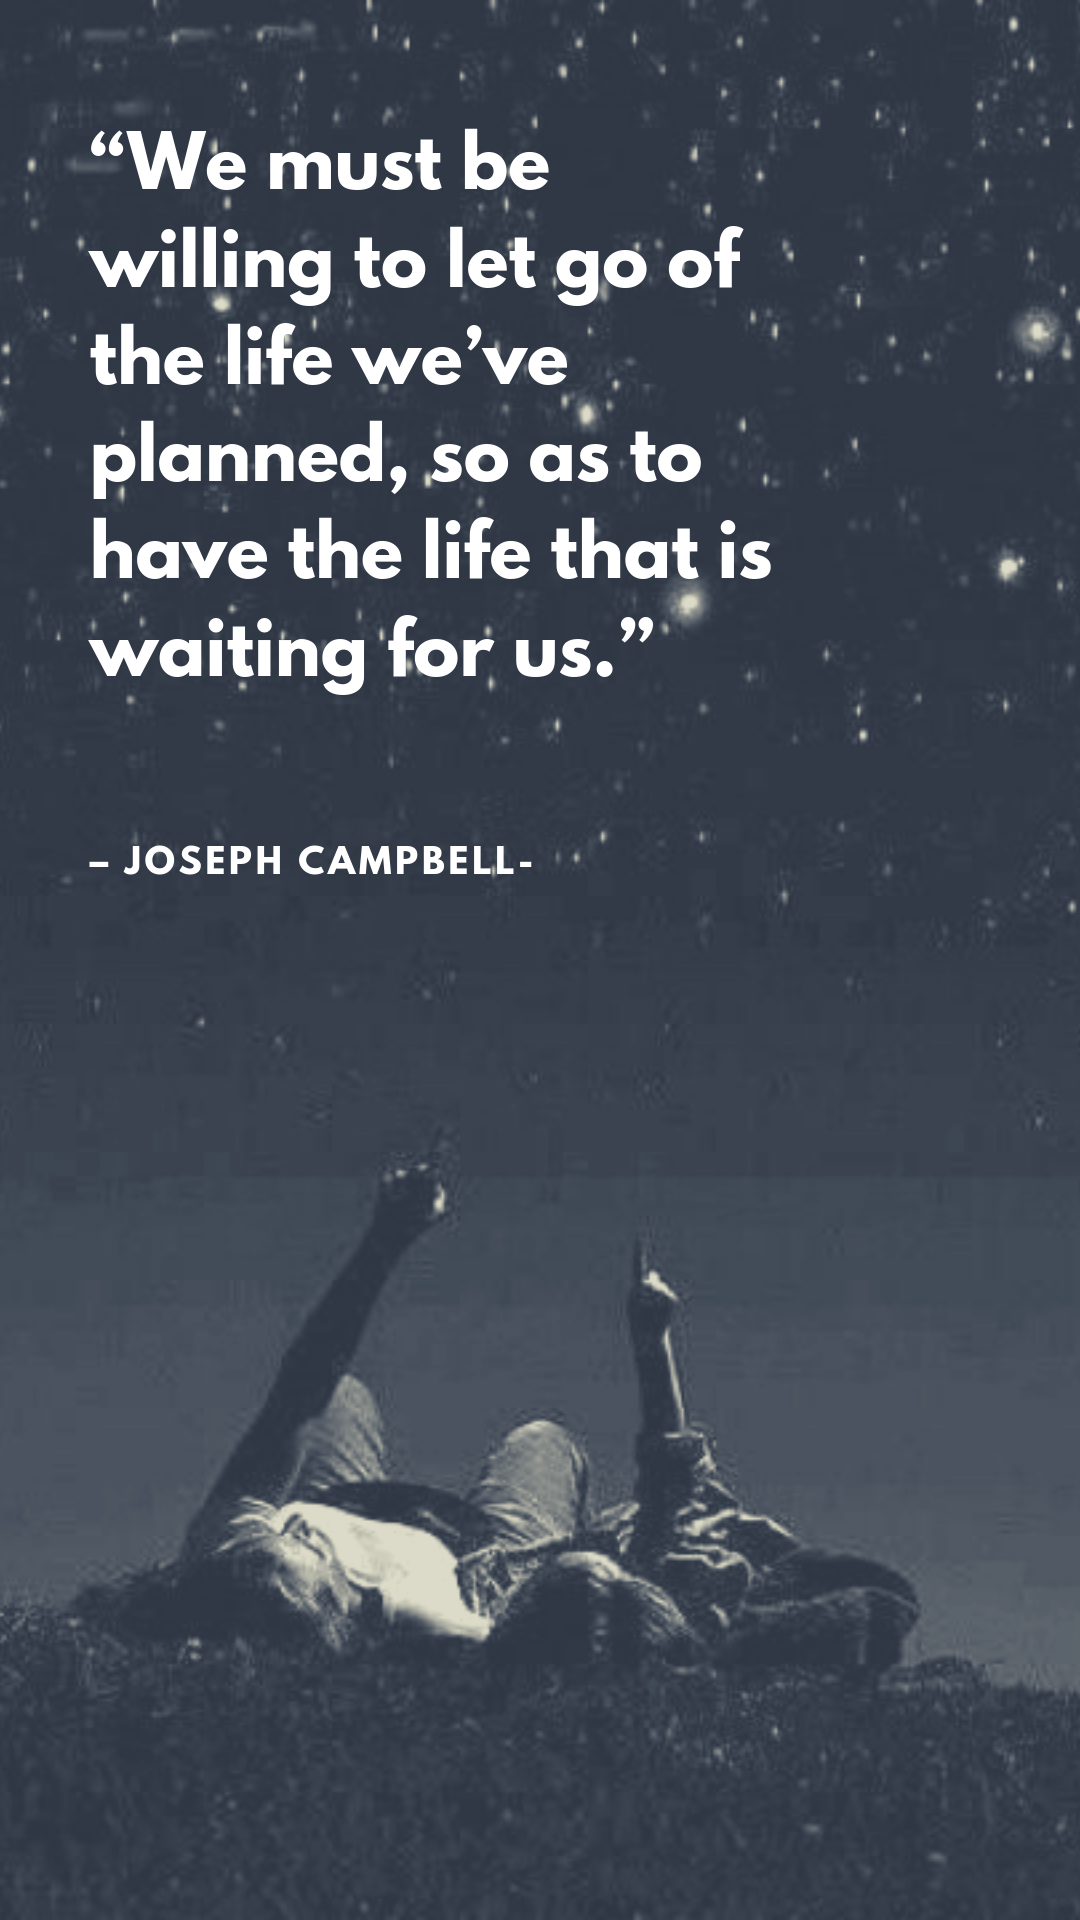 'We Must Be Willing To Let Go of Life We Have……. -Joseph Campbell- [1920×1080]